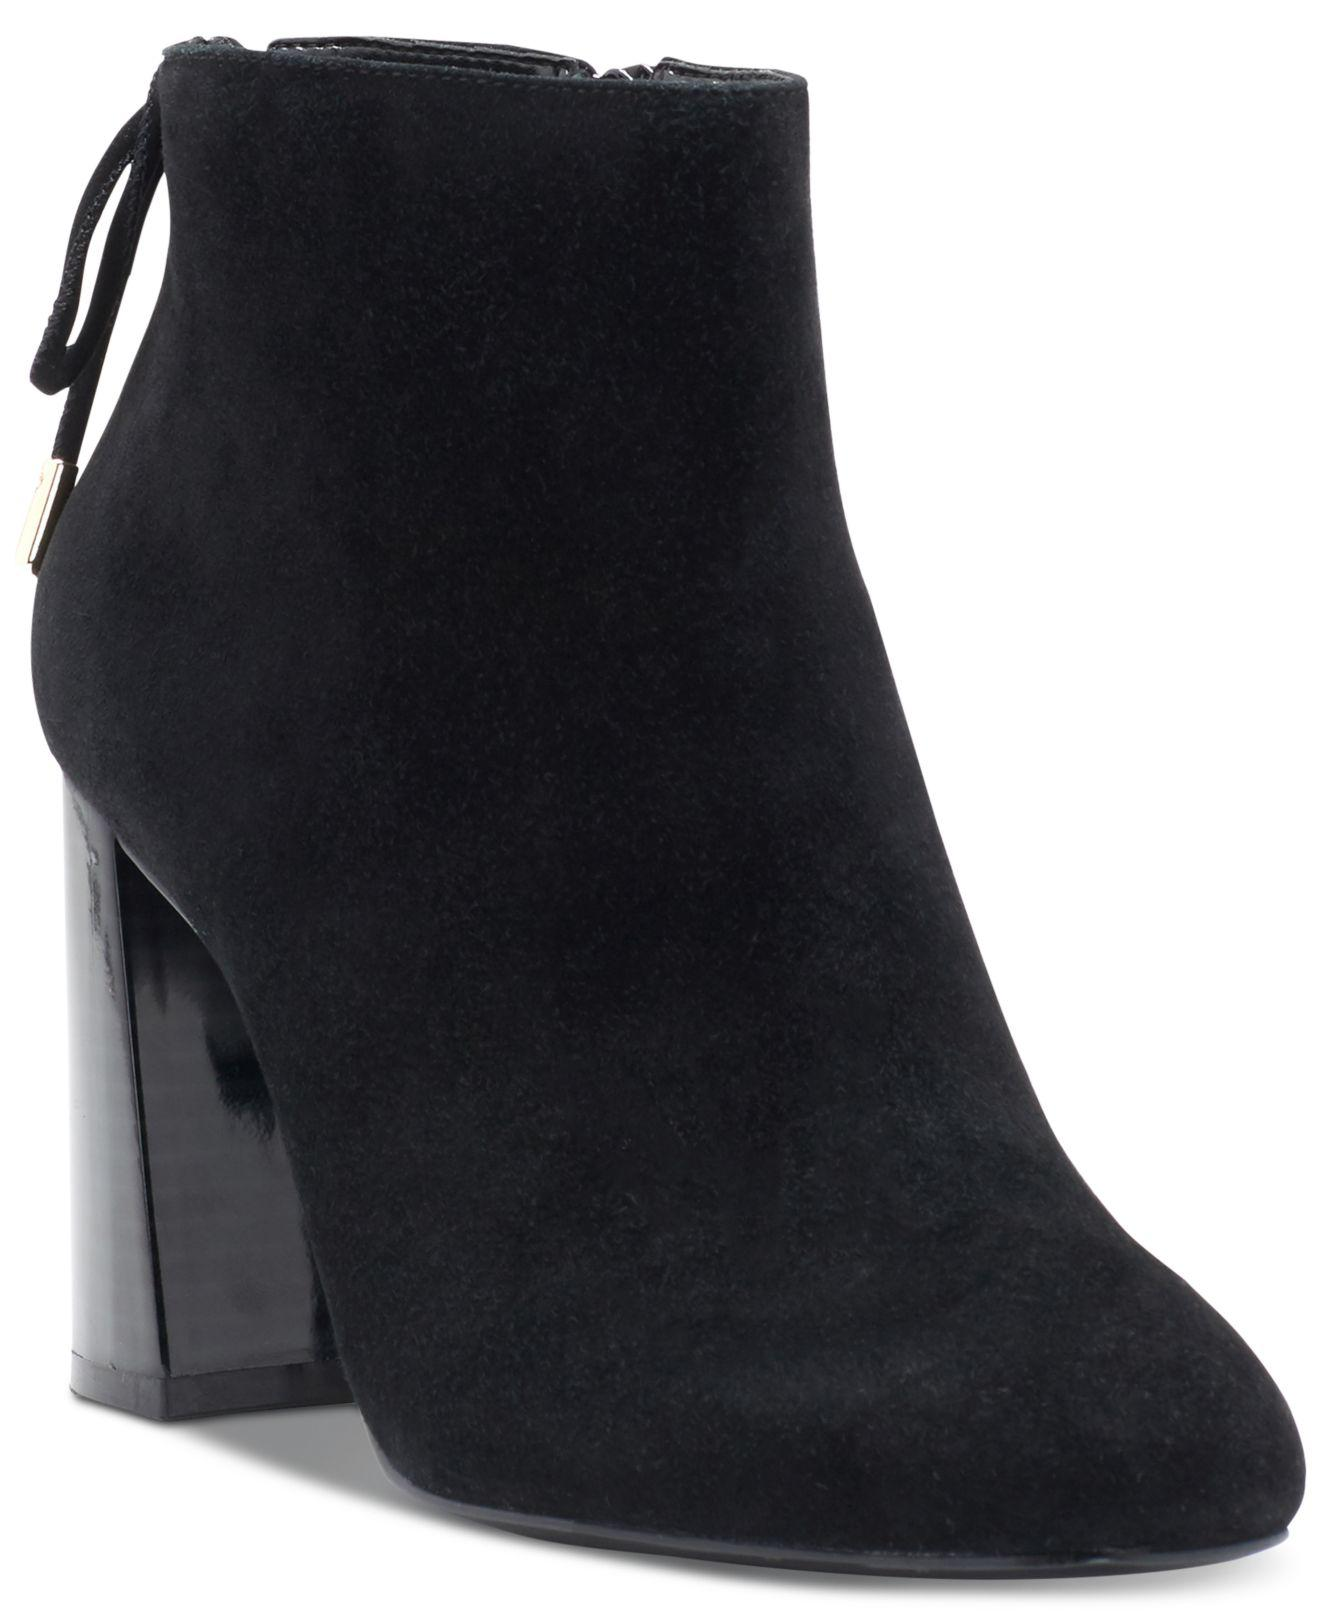 INC International Concepts Concepts Concepts mujer Denelli Suede Closed Toe Ankle Fashion botas  muy popular